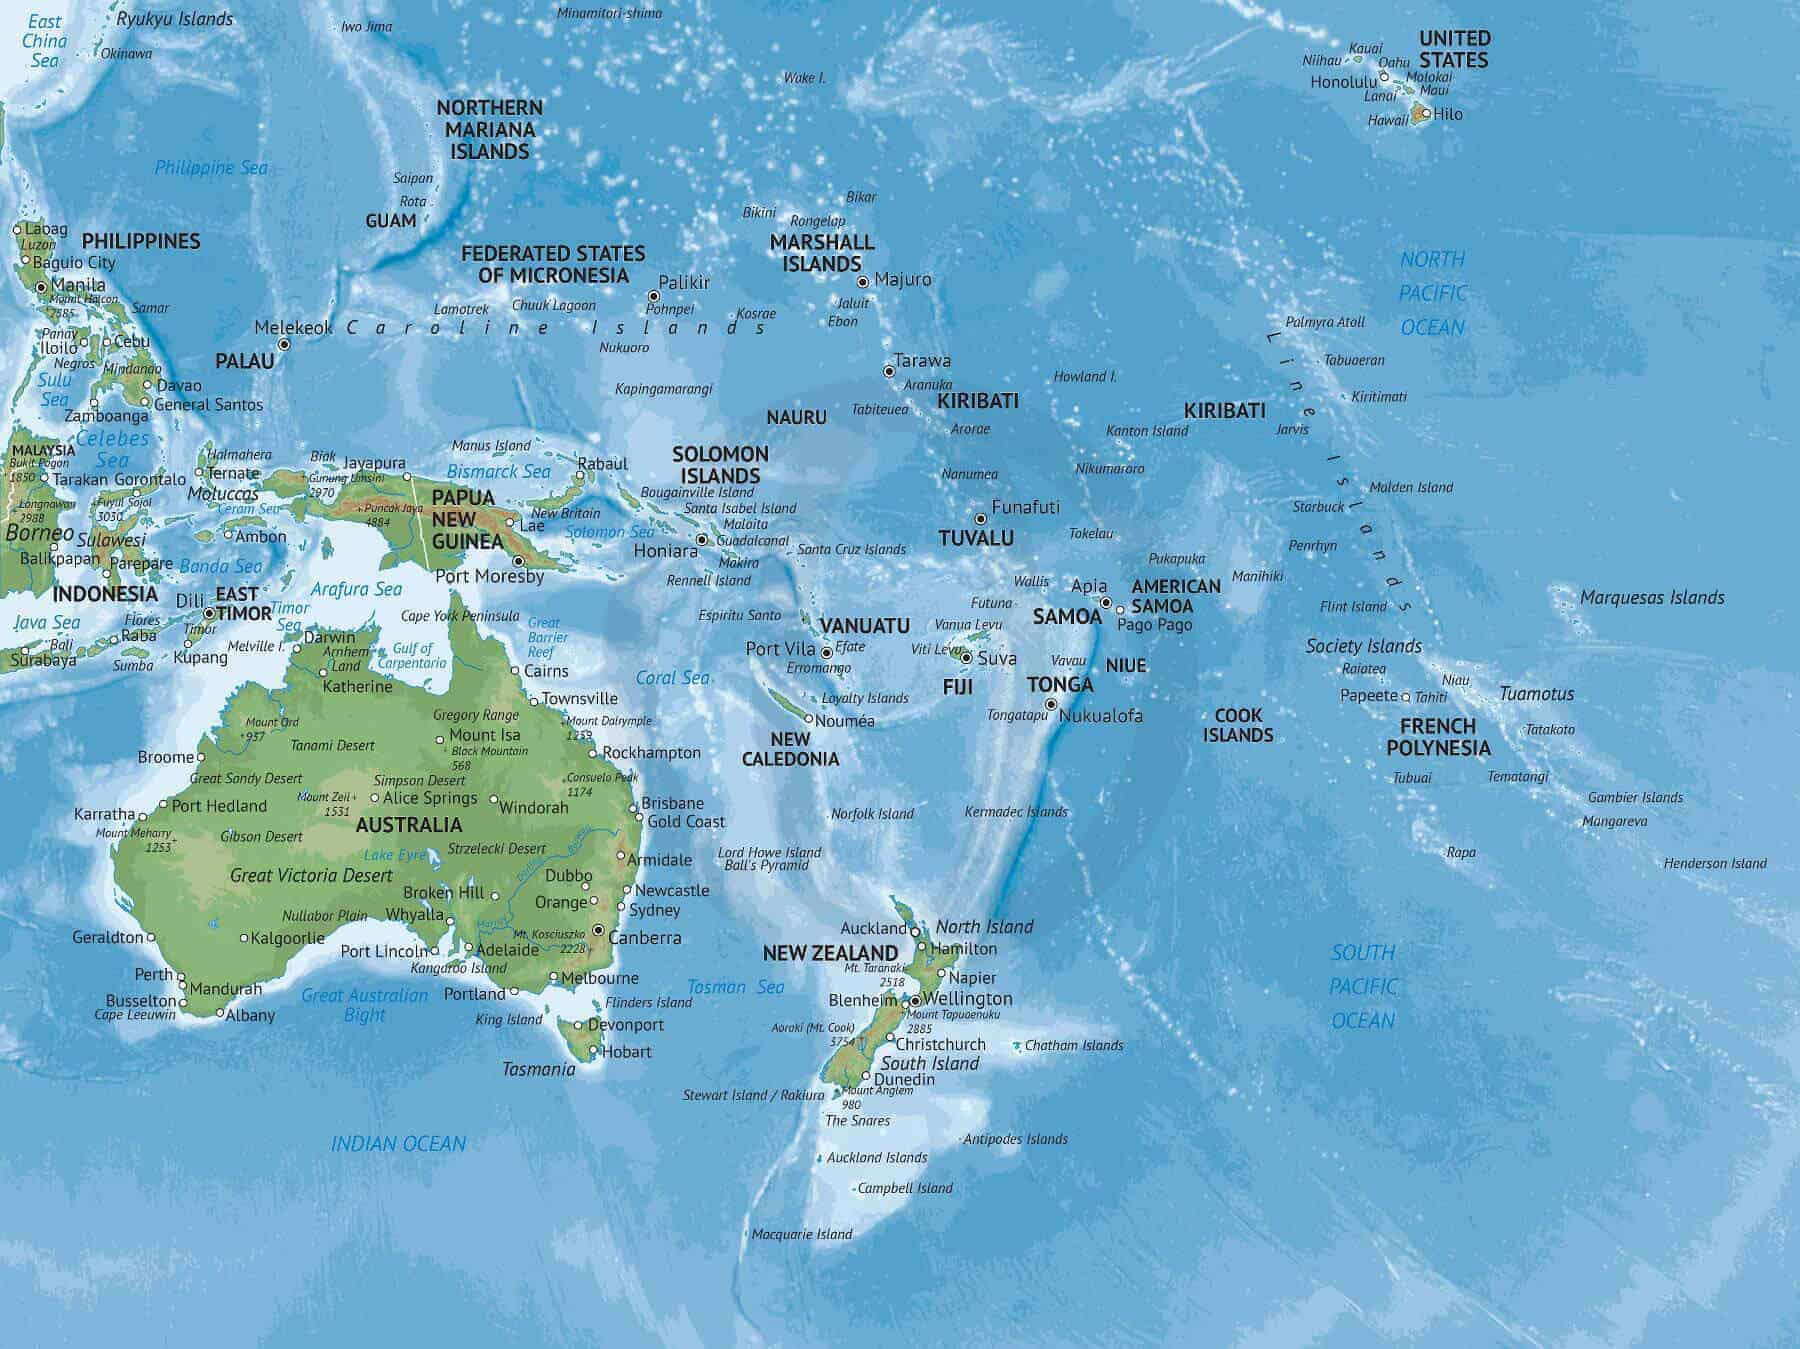 Map of Oceania in Naturalist style